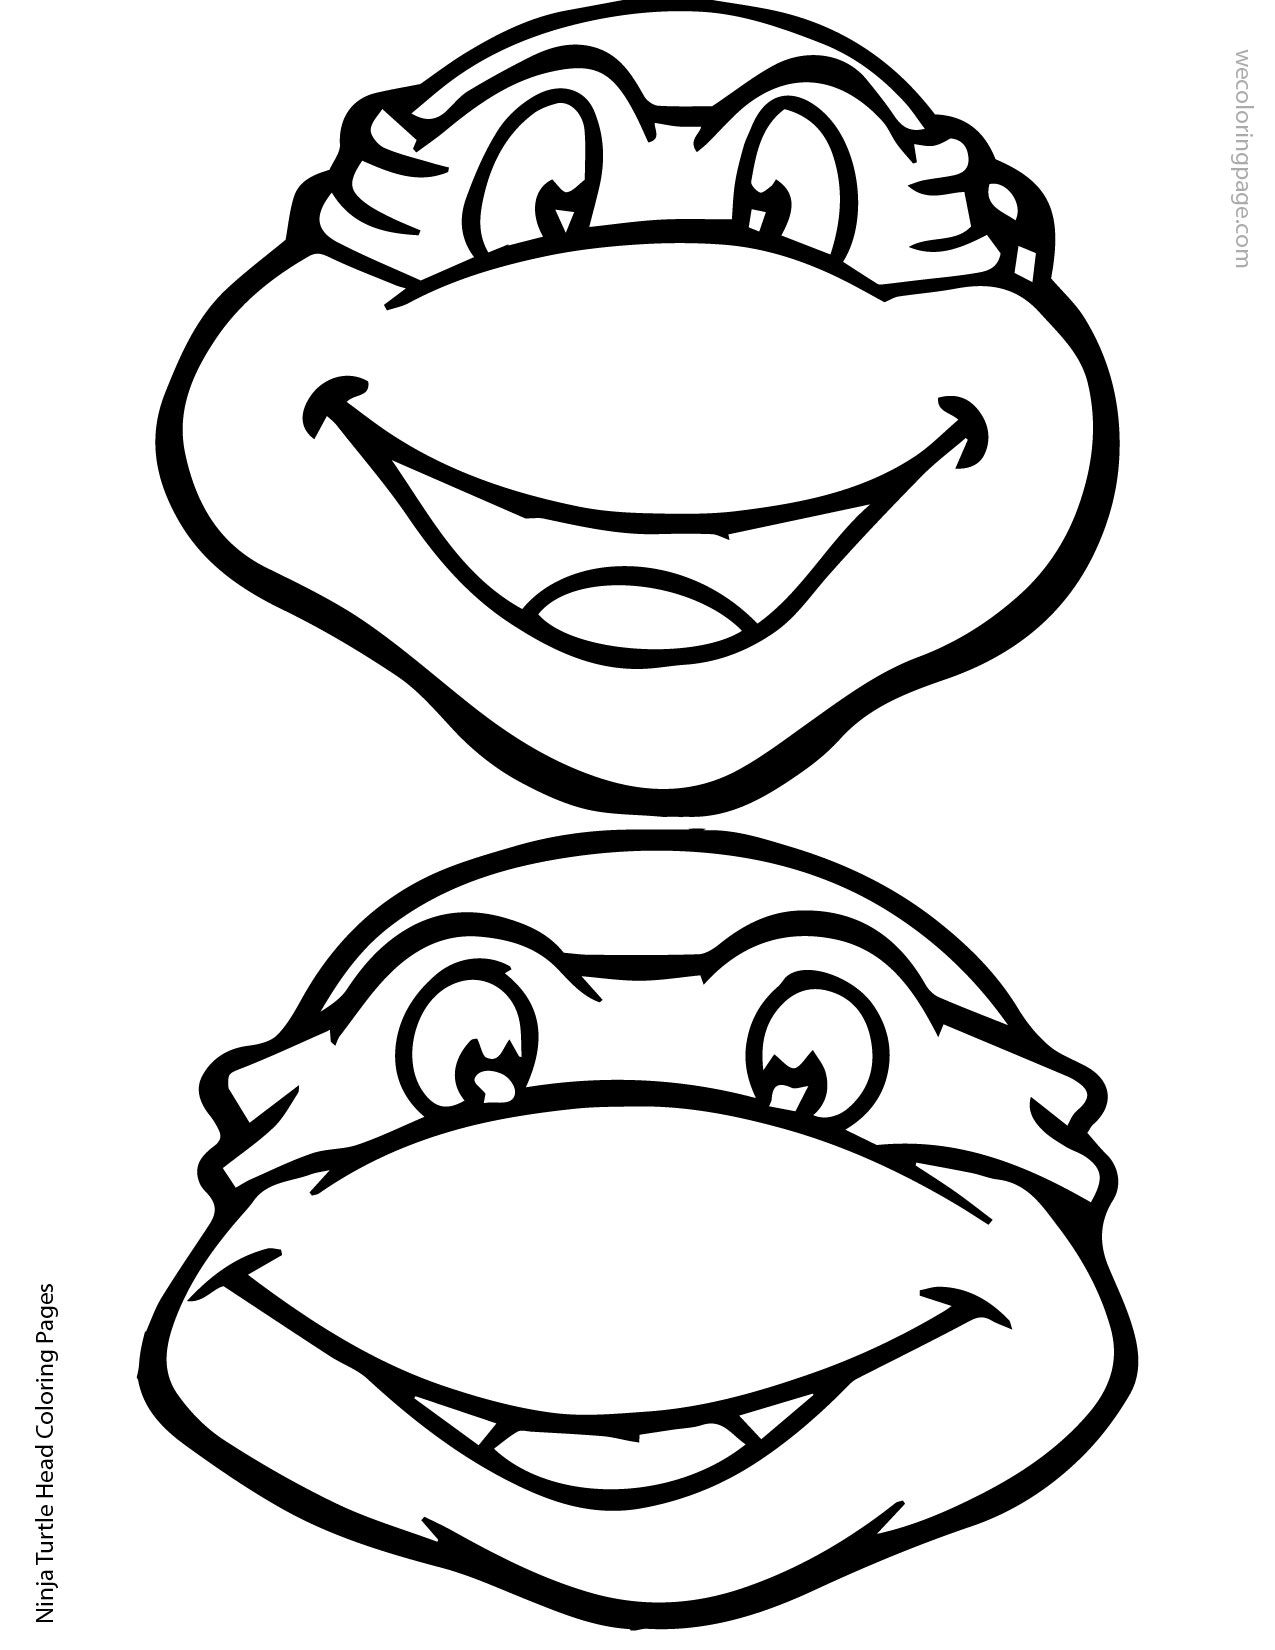 Ninja Turtle Head Coloring Page 02 01 Teenage Mutant Ninja Turtles Coloring Pages Colorin Ninja Turtle Coloring Pages Turtle Coloring Pages Ninja Turtle Mask